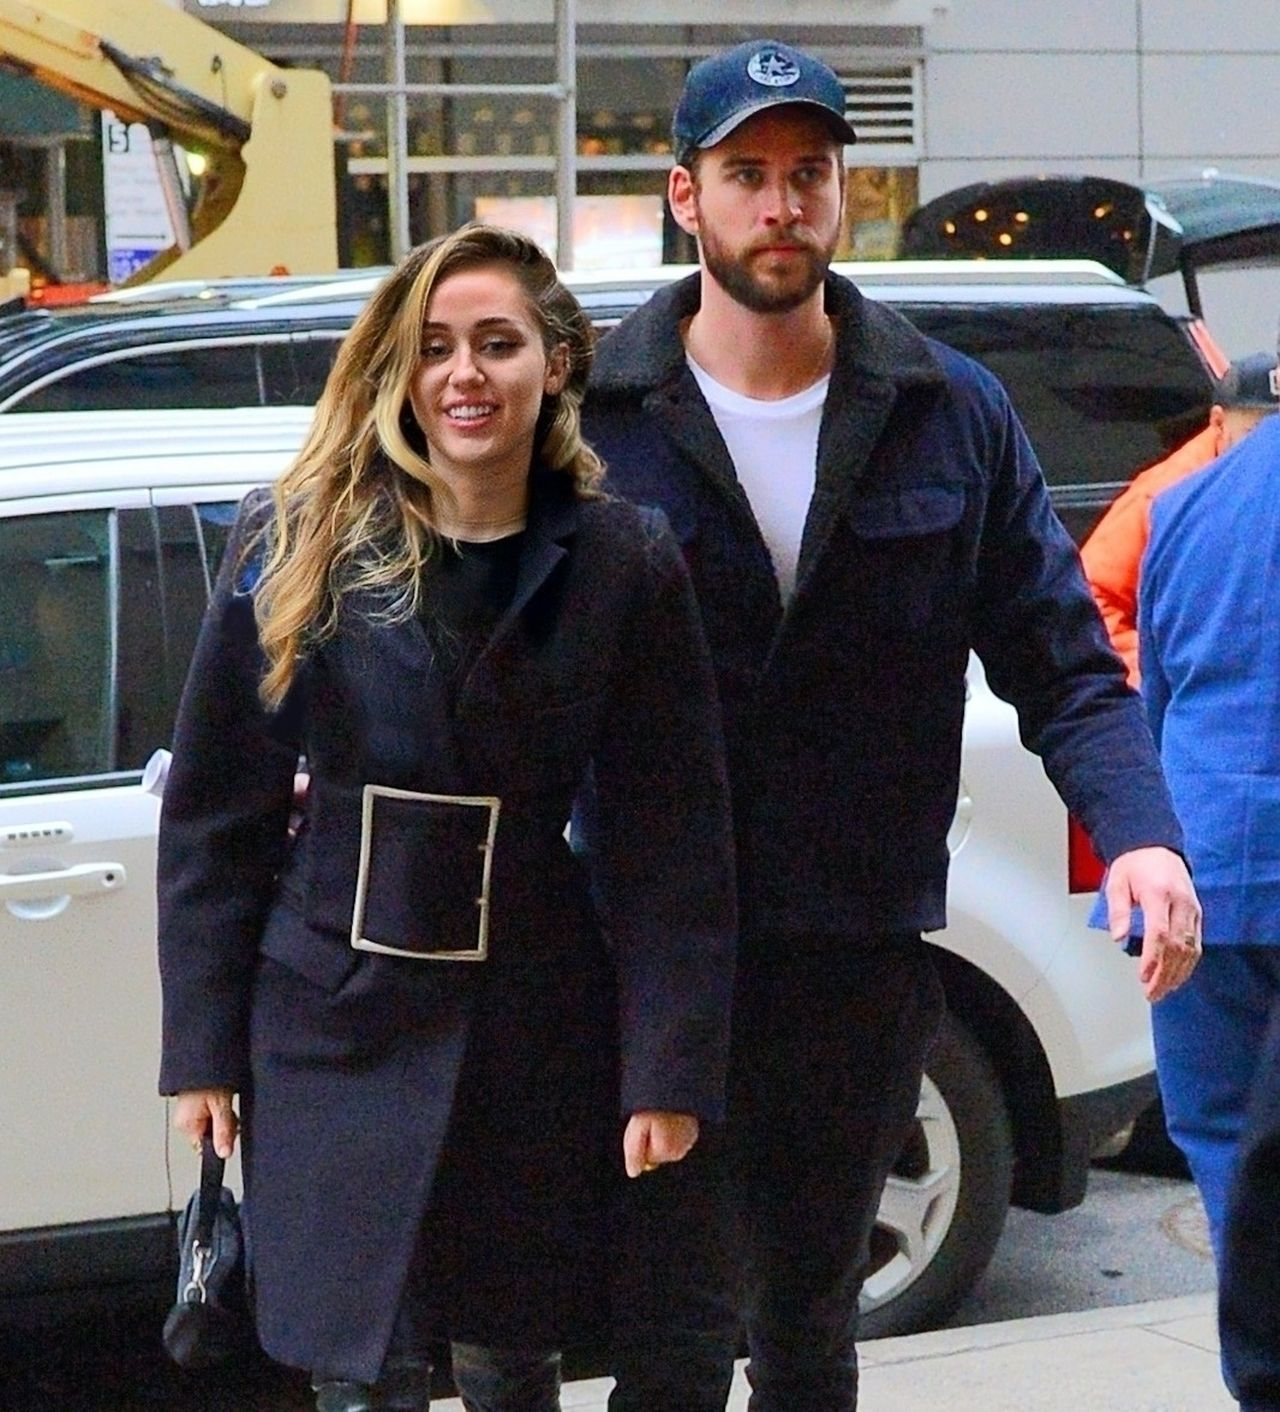 *EXCLUSIVE* Miley Cyrus and Liam Hemsworth are seen together for the first time since losing their home Miley Cyrus, Liam Hemsworth